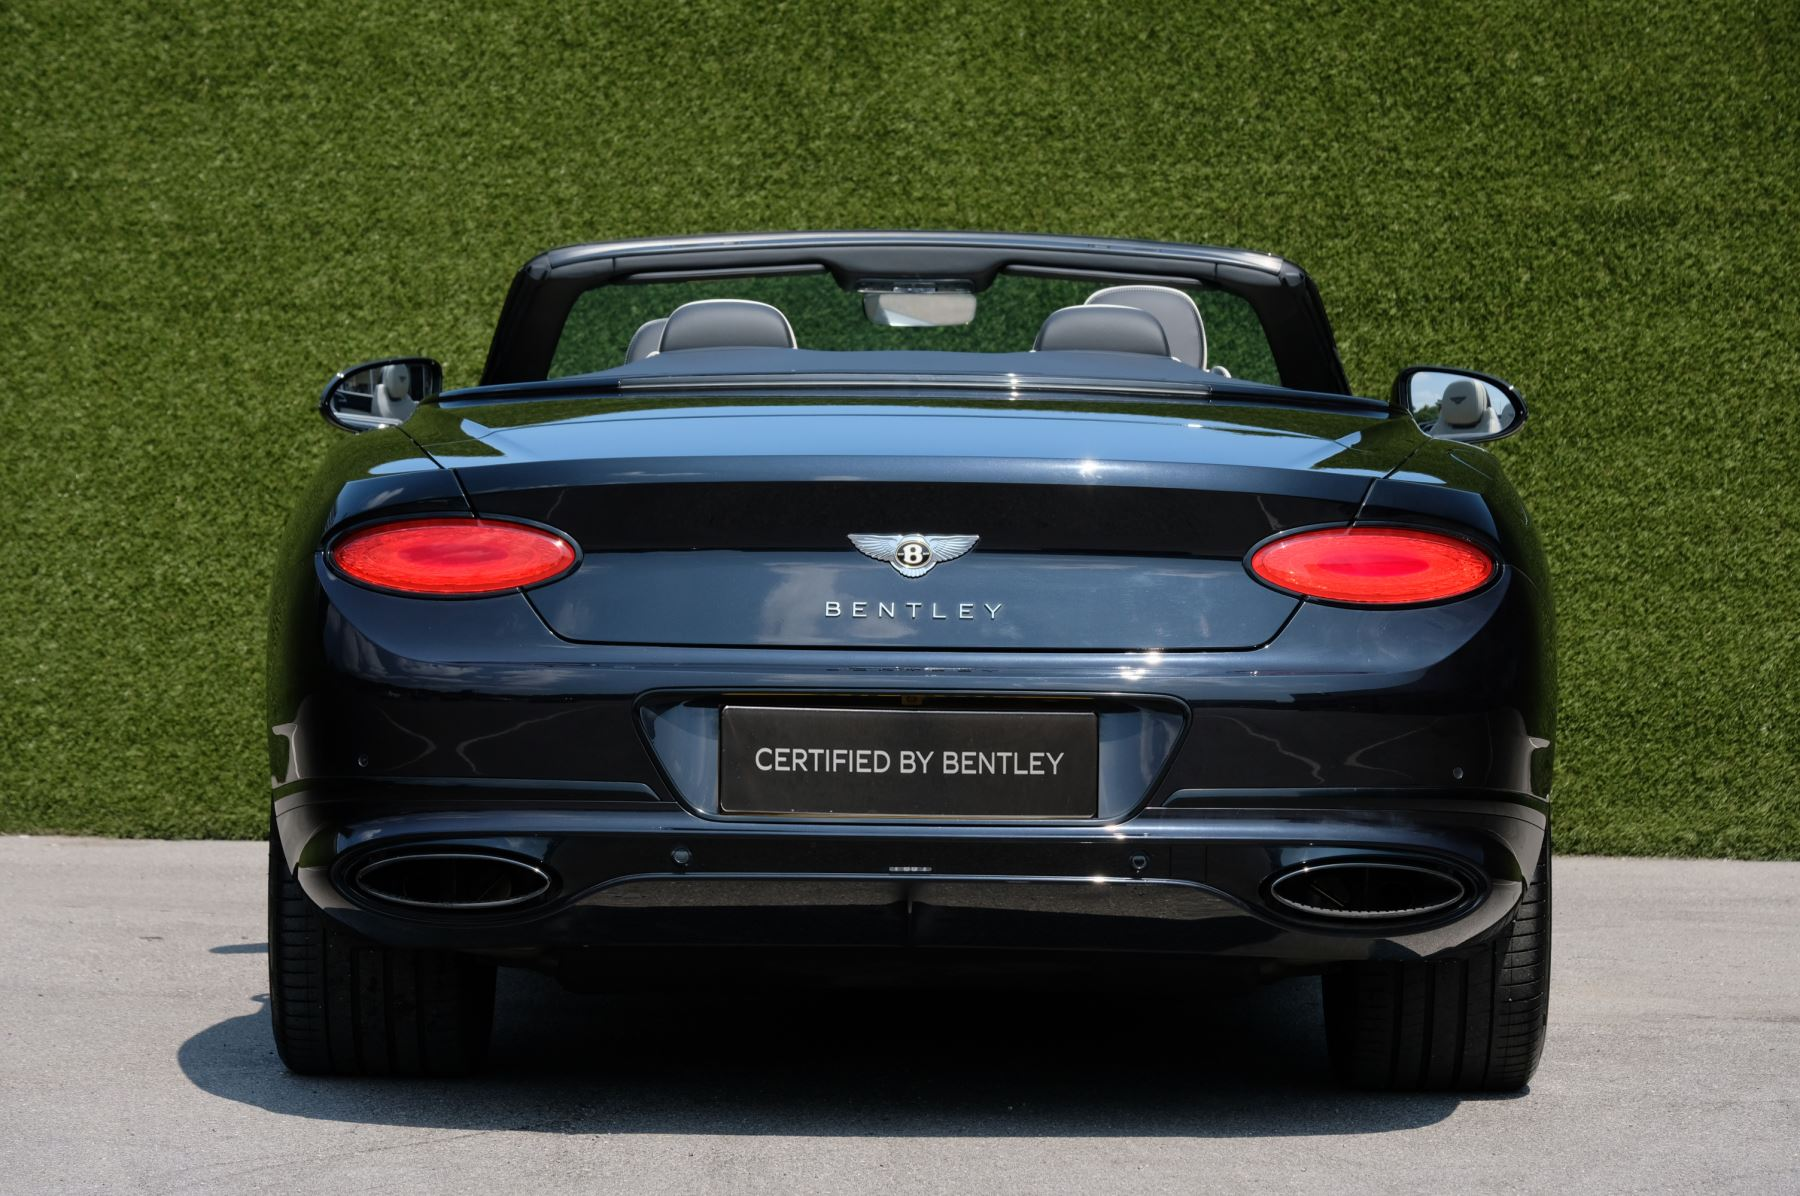 Bentley Continental GTC 6.0 W12 - Mulliner Driving Specification and Centenary Specification image 4